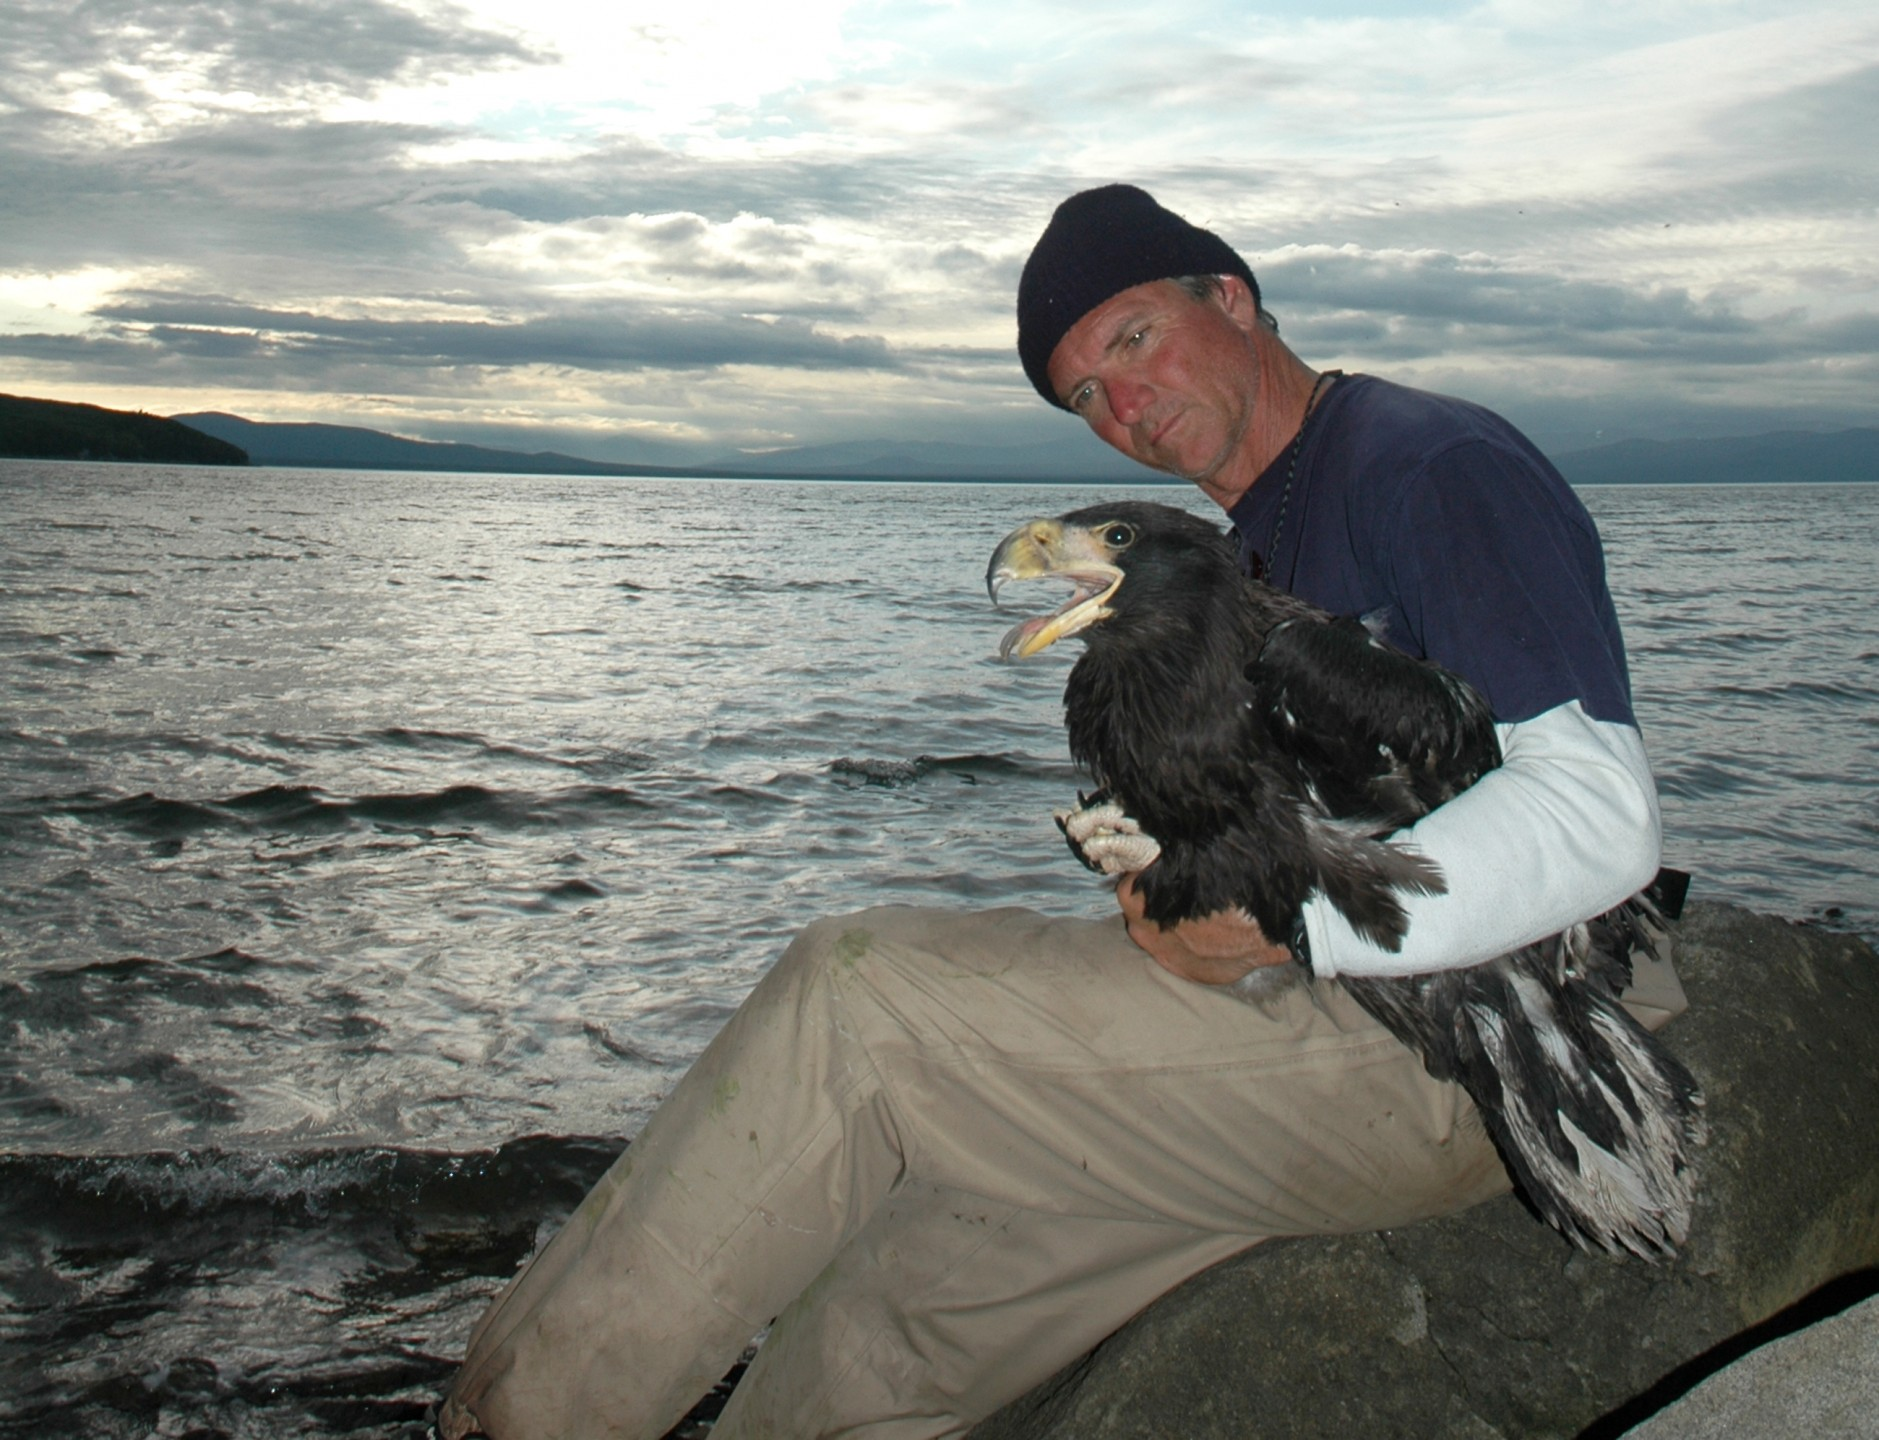 Dave Rimlinger, San Diego Zoo curator of birds, holds a Steller's sea-eagle during the expedition. Dave's wind-chapped and sunburned appearance attest to the harsh conditions of working along the Siberian coast. And note his firm grip on the eagle's legs and feet—those talons deserve respect!